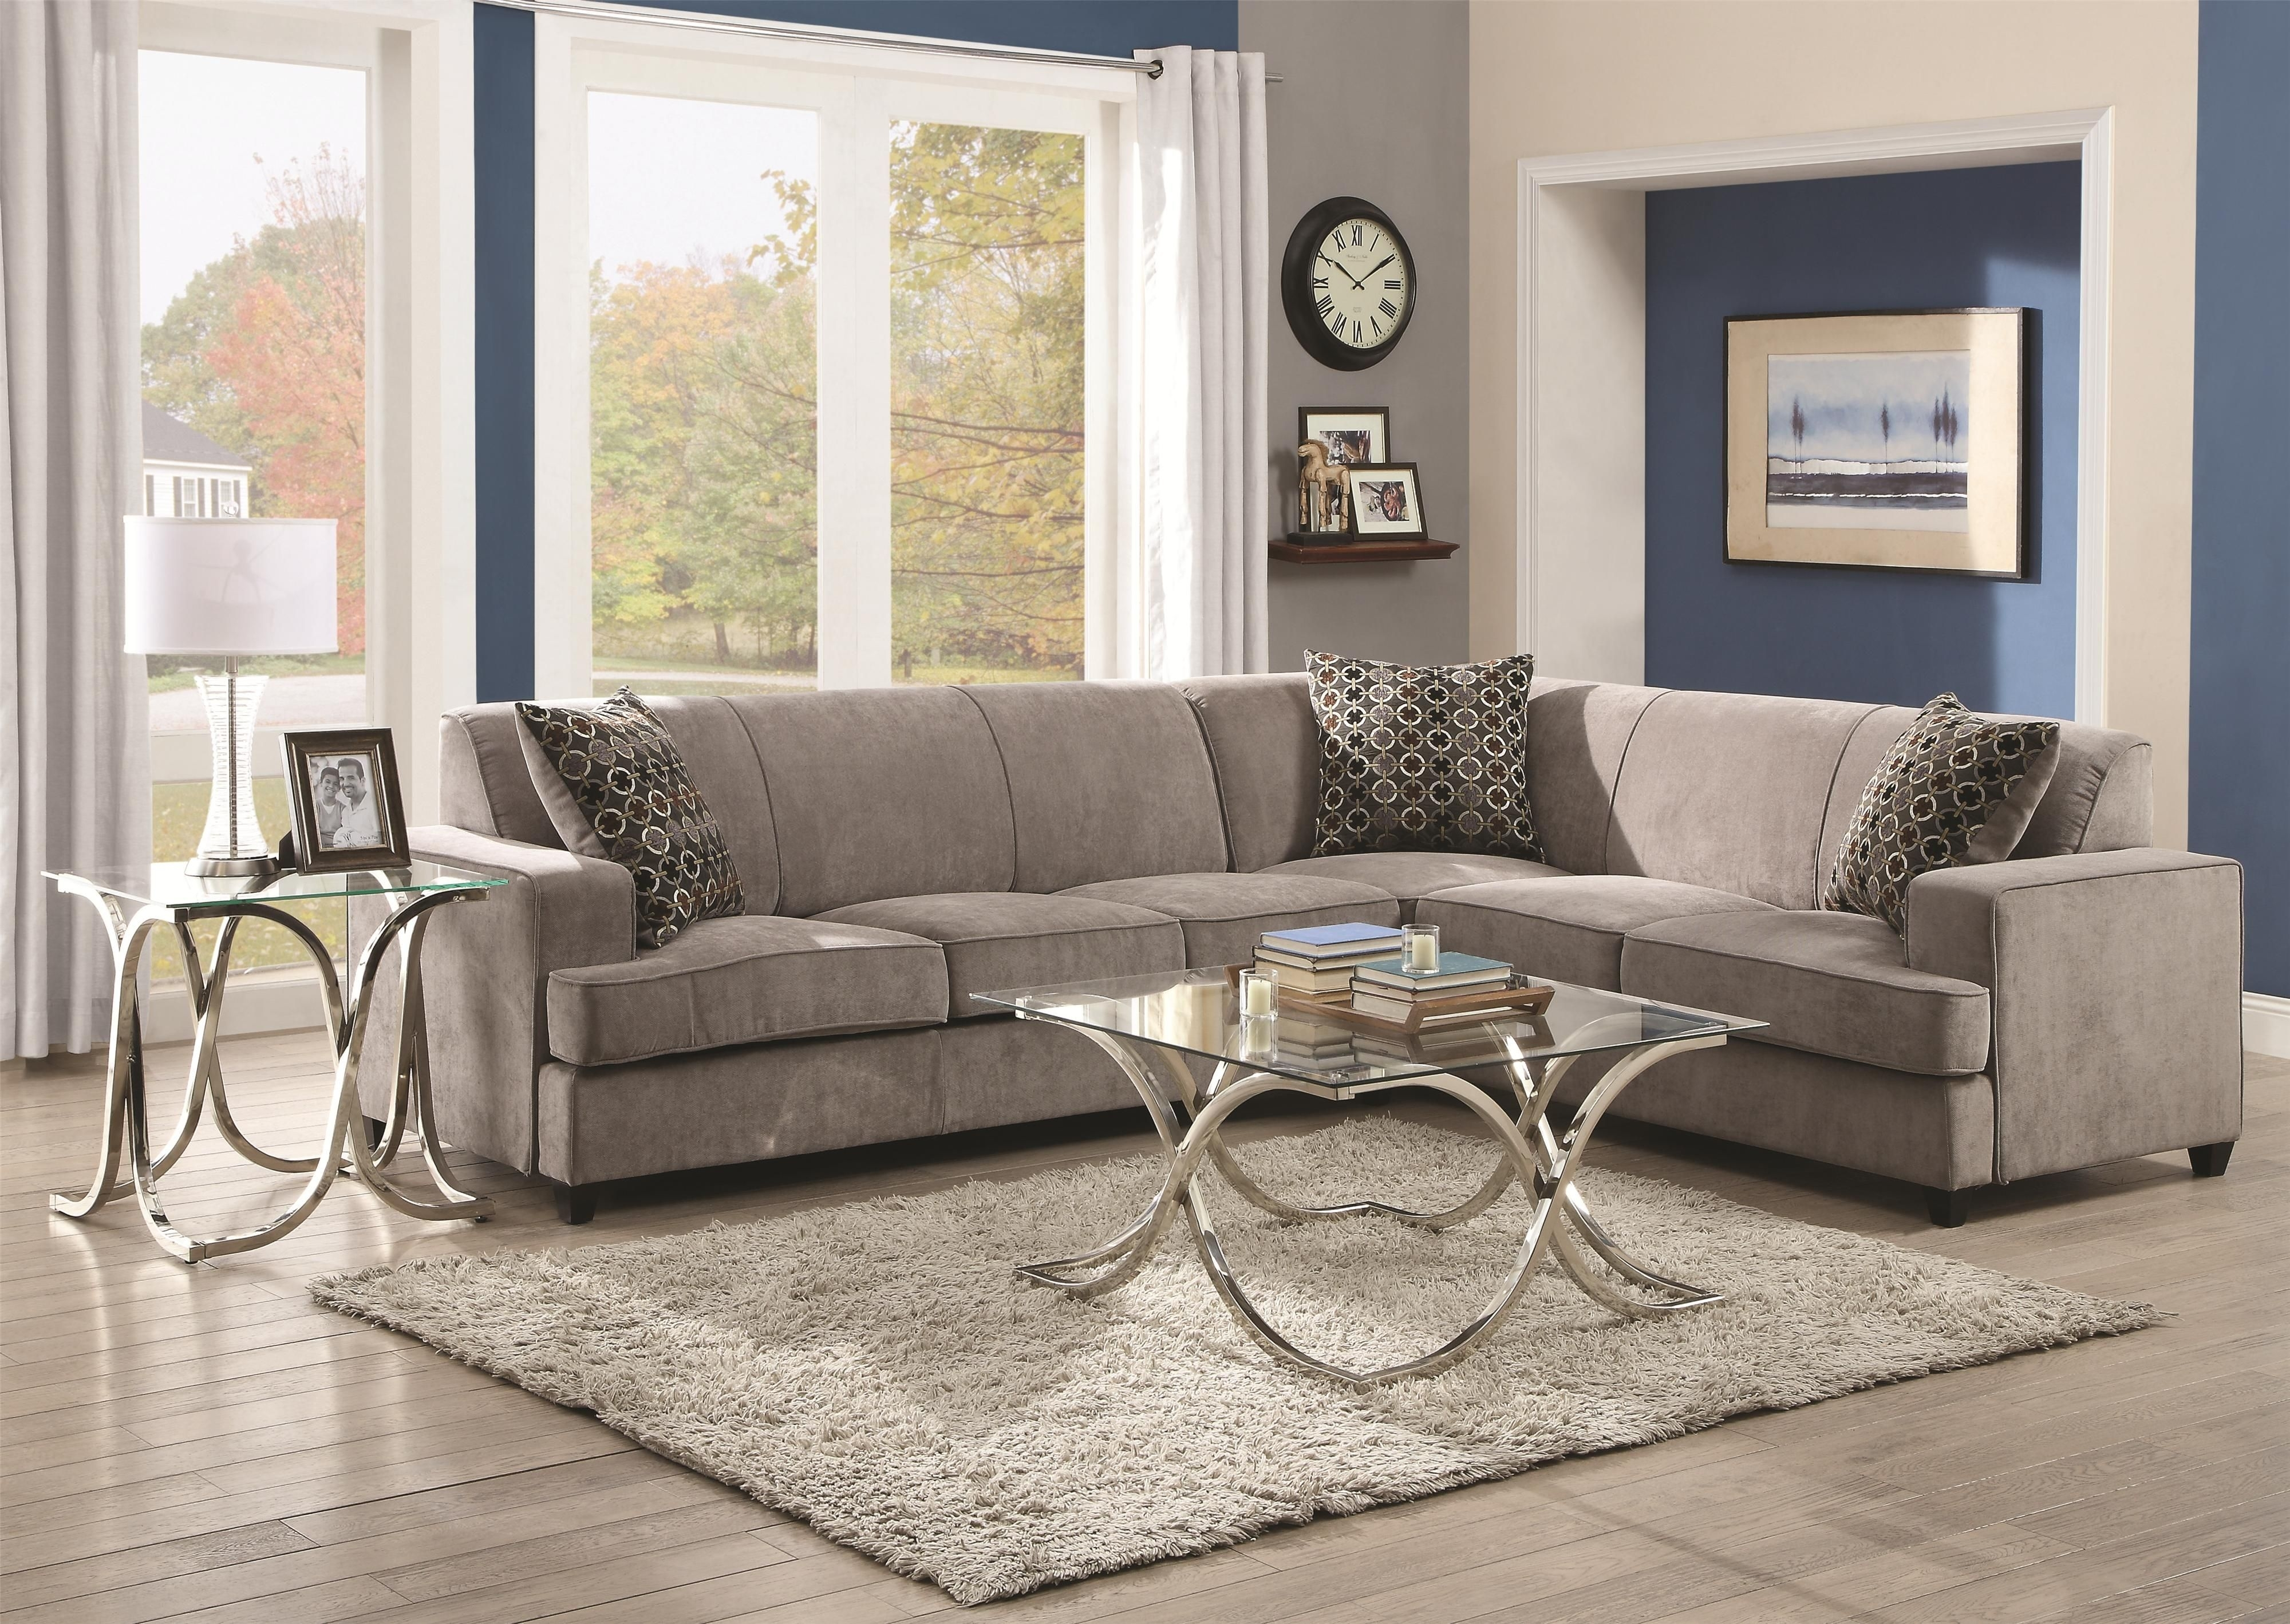 Tess Sectional Sofa For Cornerscoaster | Shades Of Grey throughout Collins Sofa Sectionals With Reversible Chaise (Image 27 of 30)